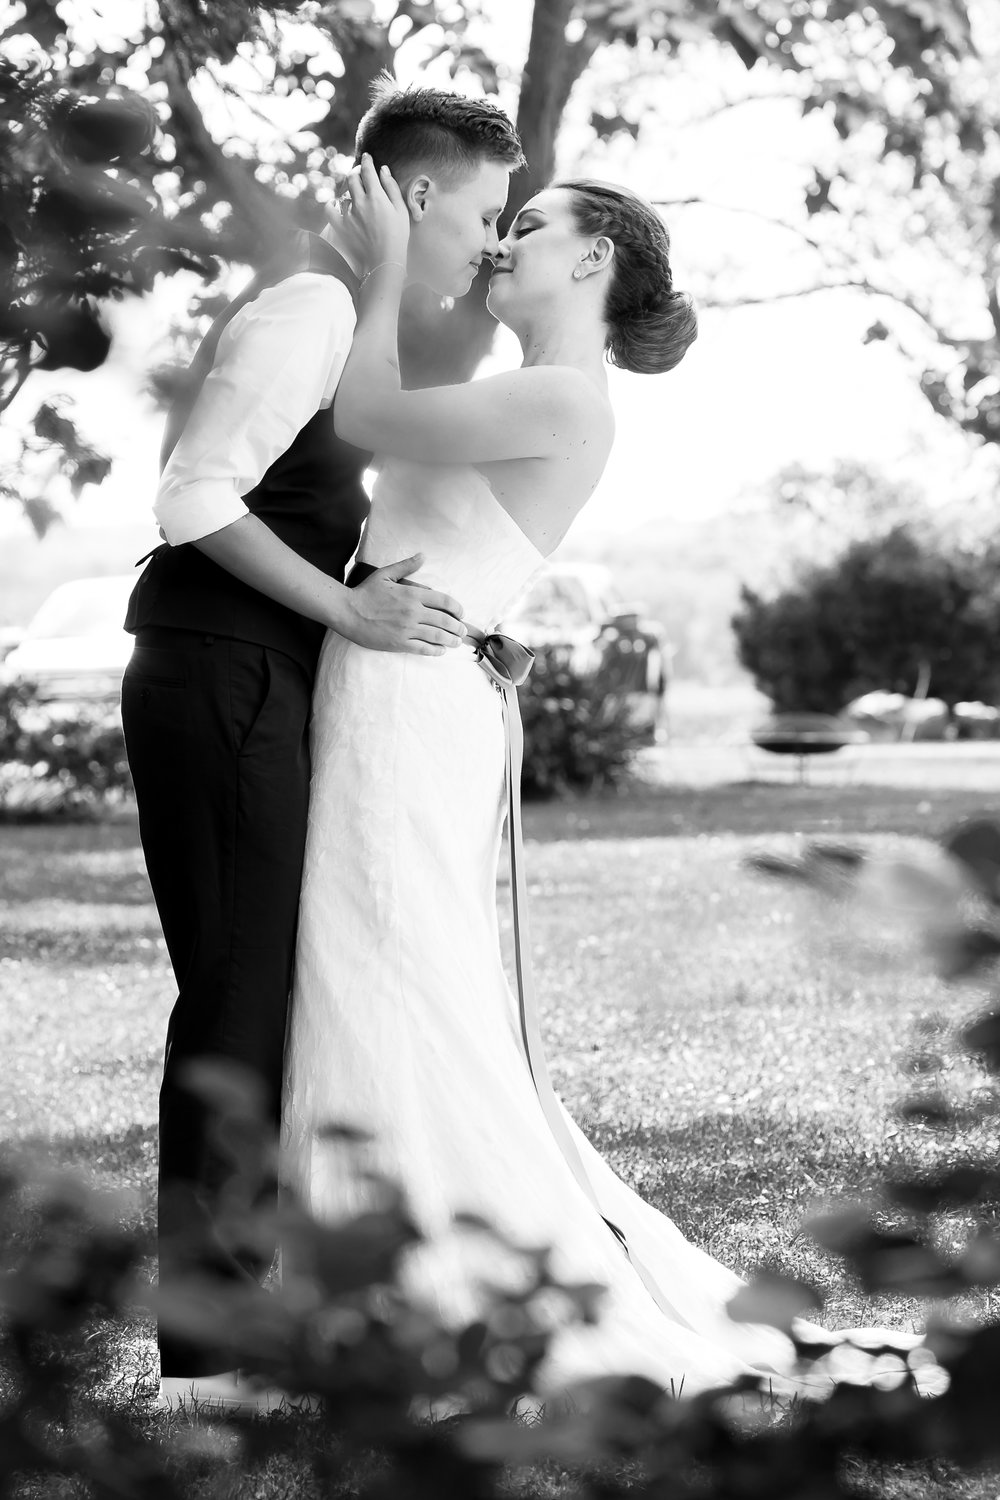 Gandjos_Tinko_BackSeatPhotography_backseatphoto41.JPG